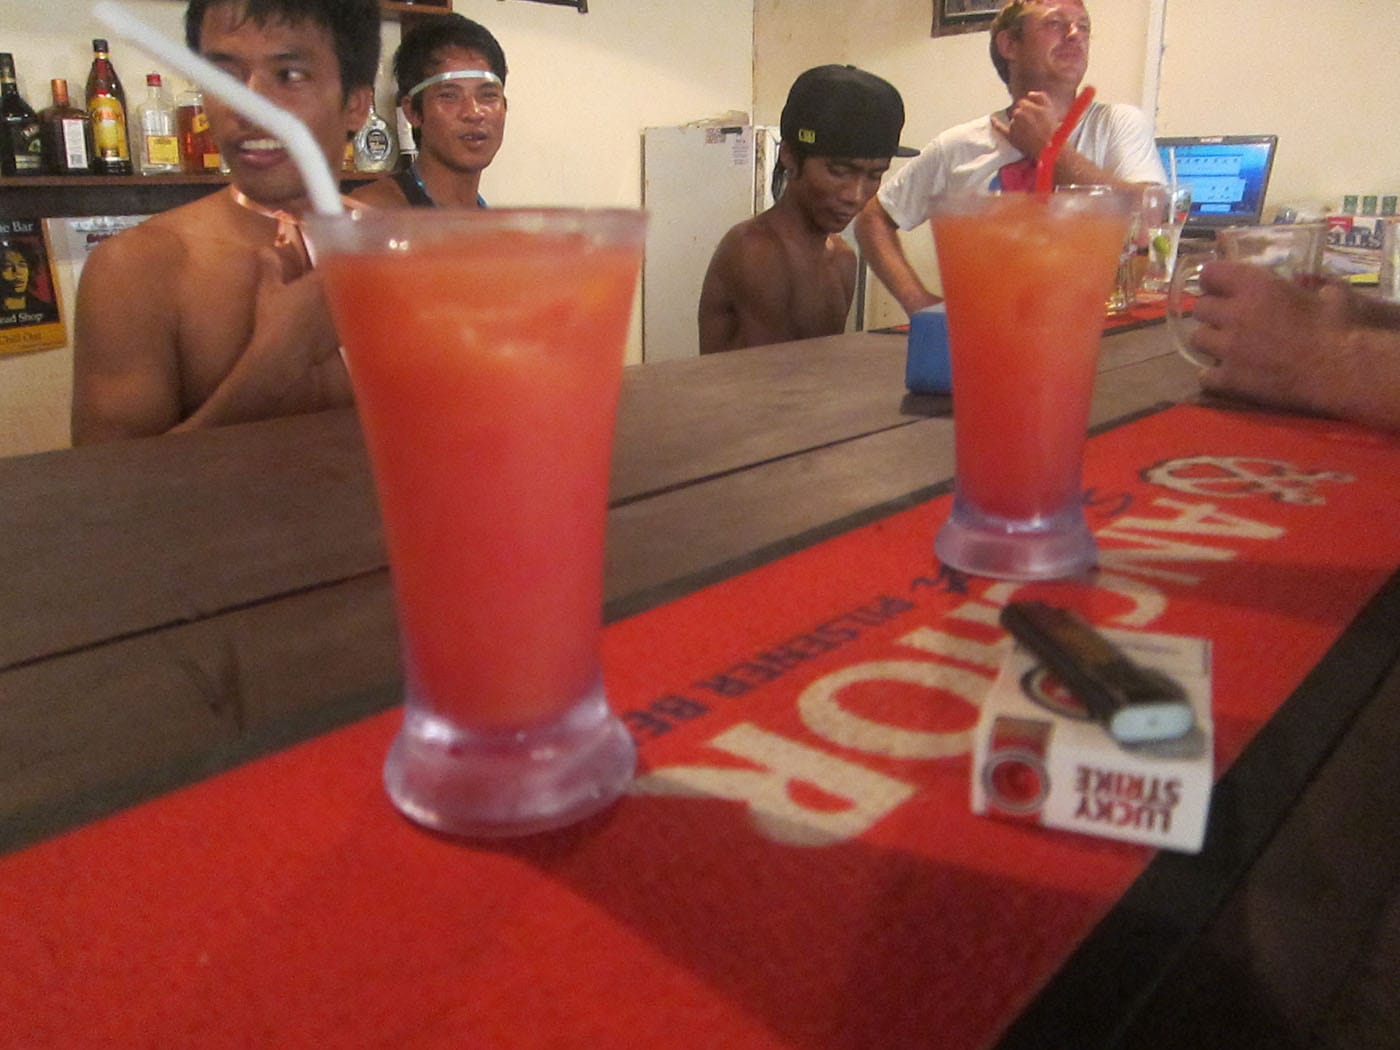 Drinks in Sihanoukville, Cambodia